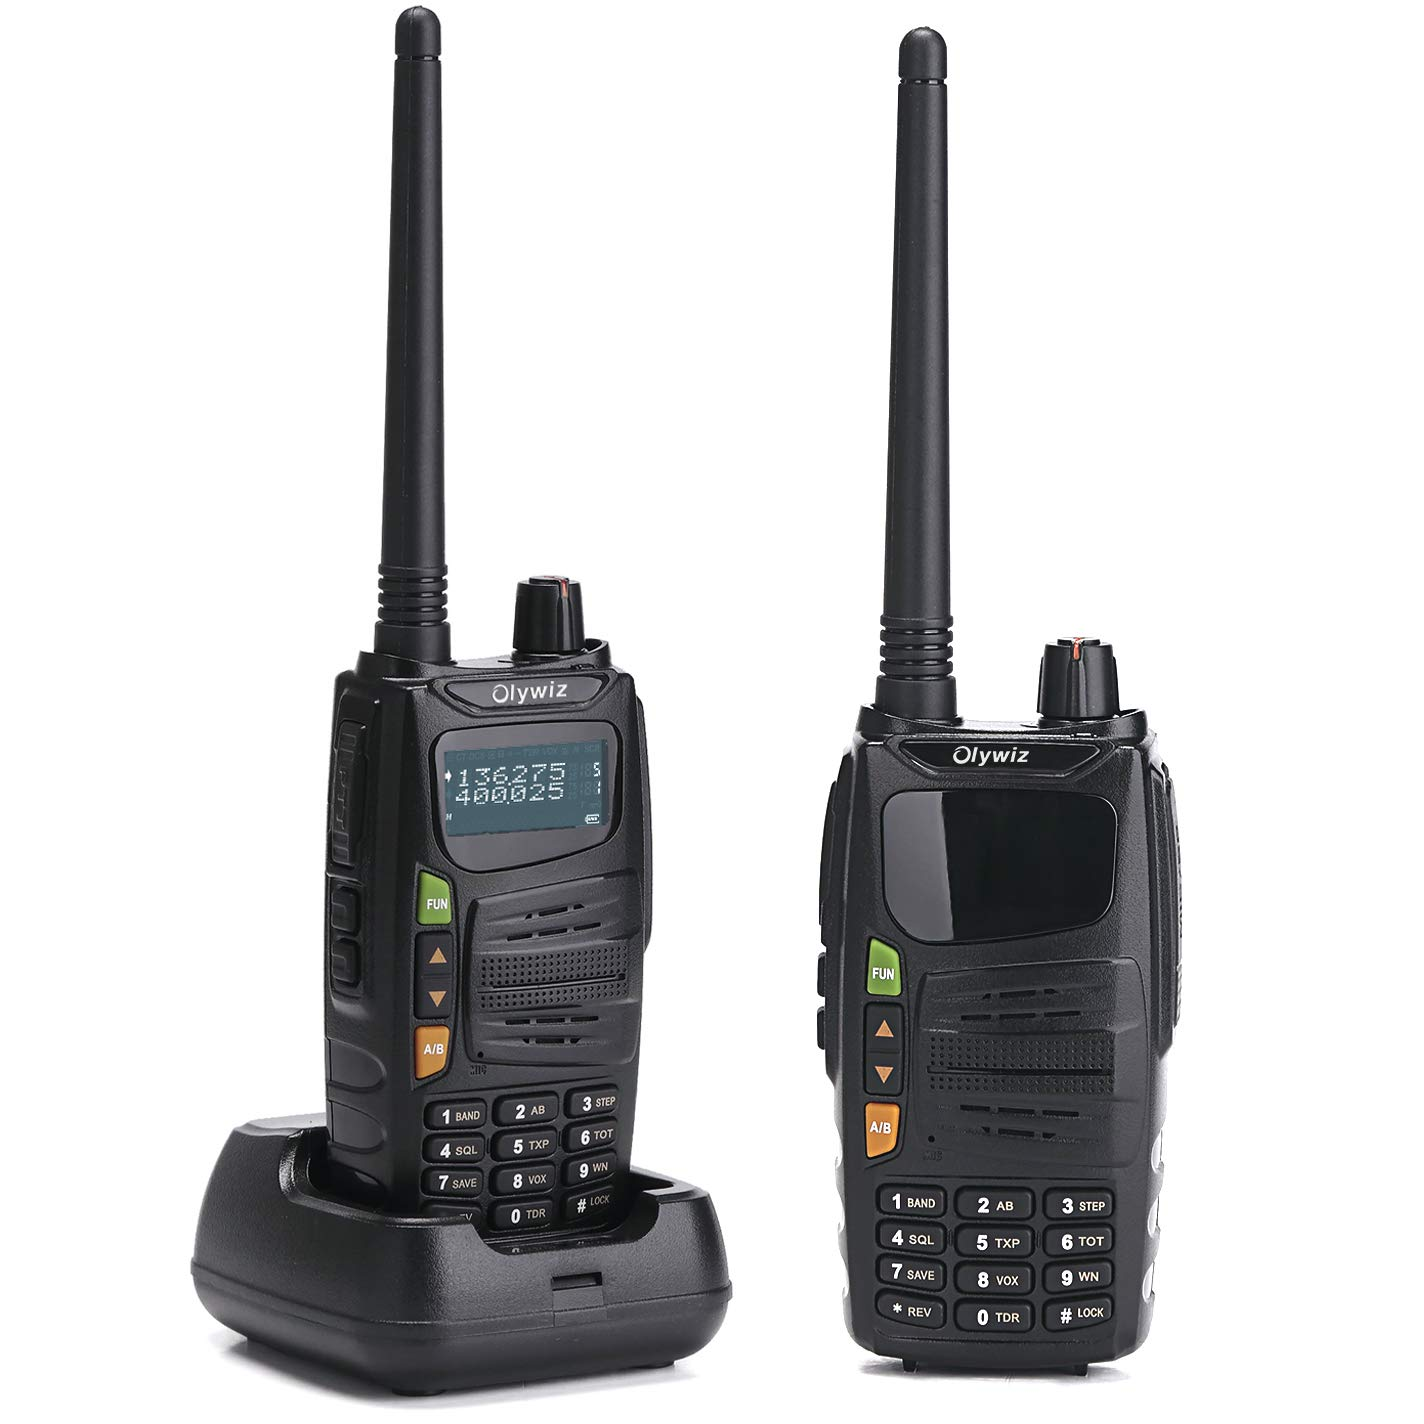 Olywiz 710 Two Way Radio Professional Walkie Talkie High/Low Power Switchable (0.5-5W) 128 Channels Amateur (Ham) Portable Rechargeable 2 Pack